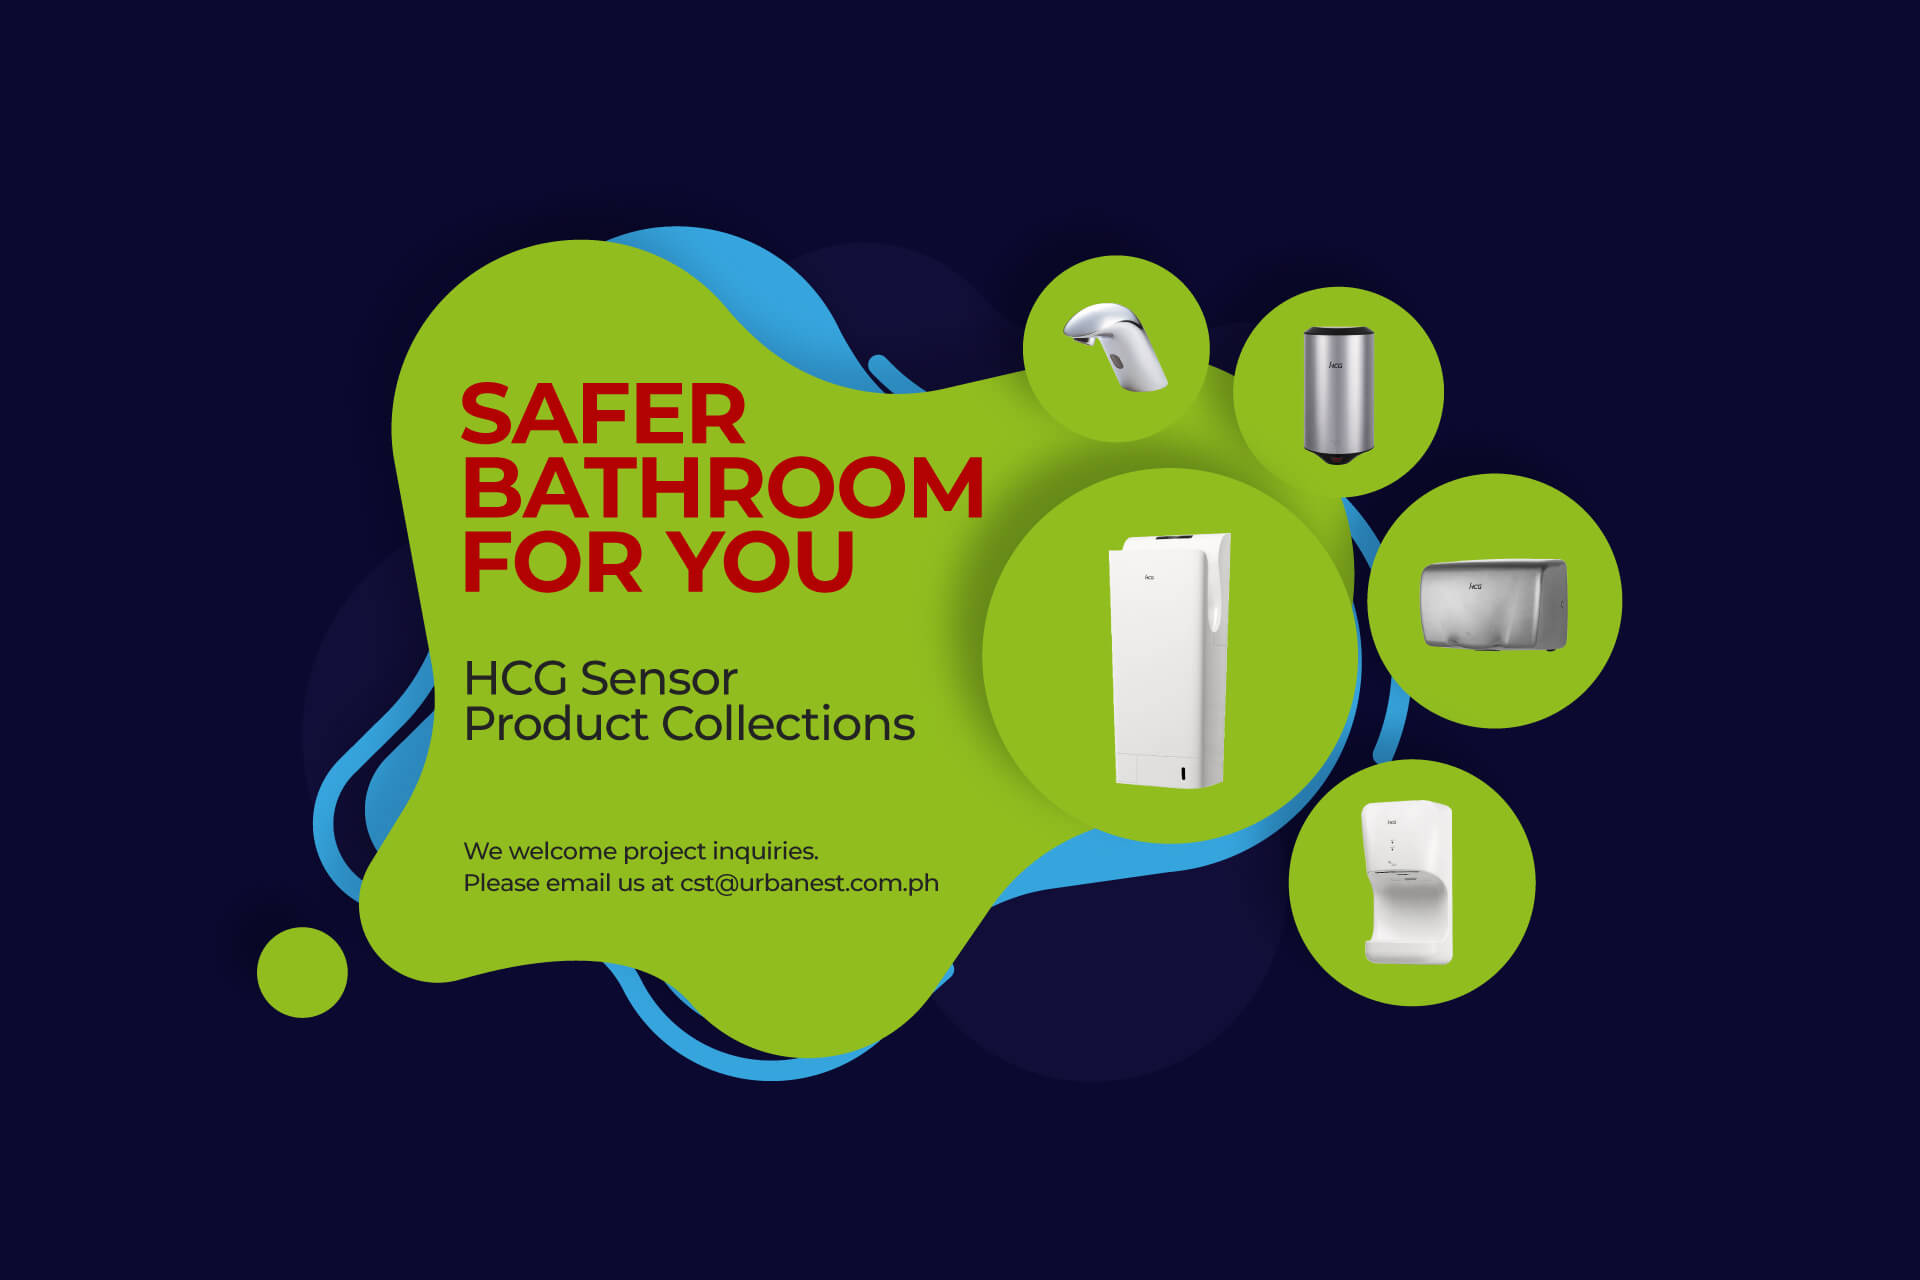 Sensor Product Banner-Safer bathroom for you